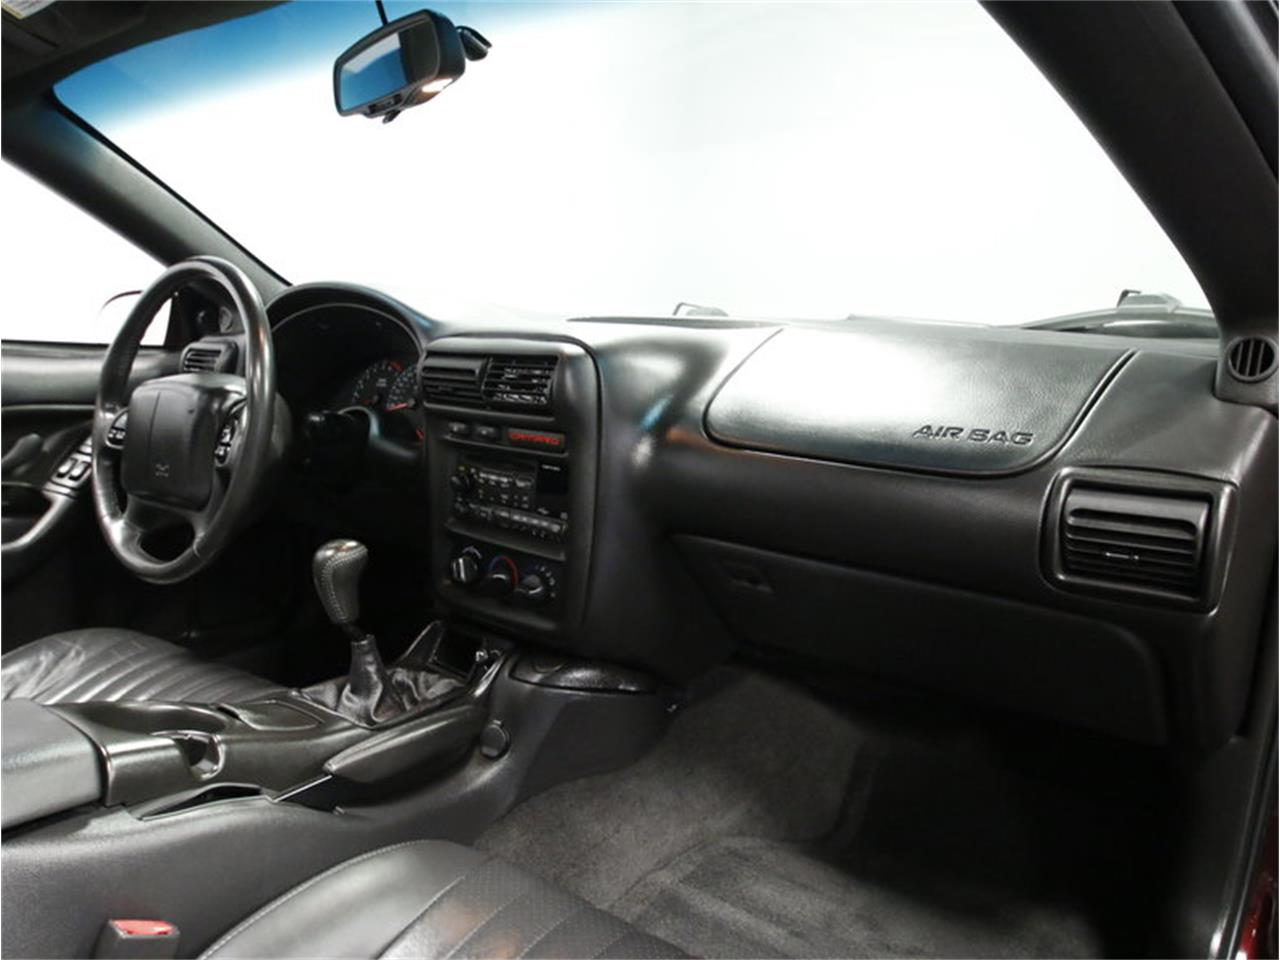 Large Picture of '00 Camaro Z28 located in North Carolina - $15,995.00 - LHHO